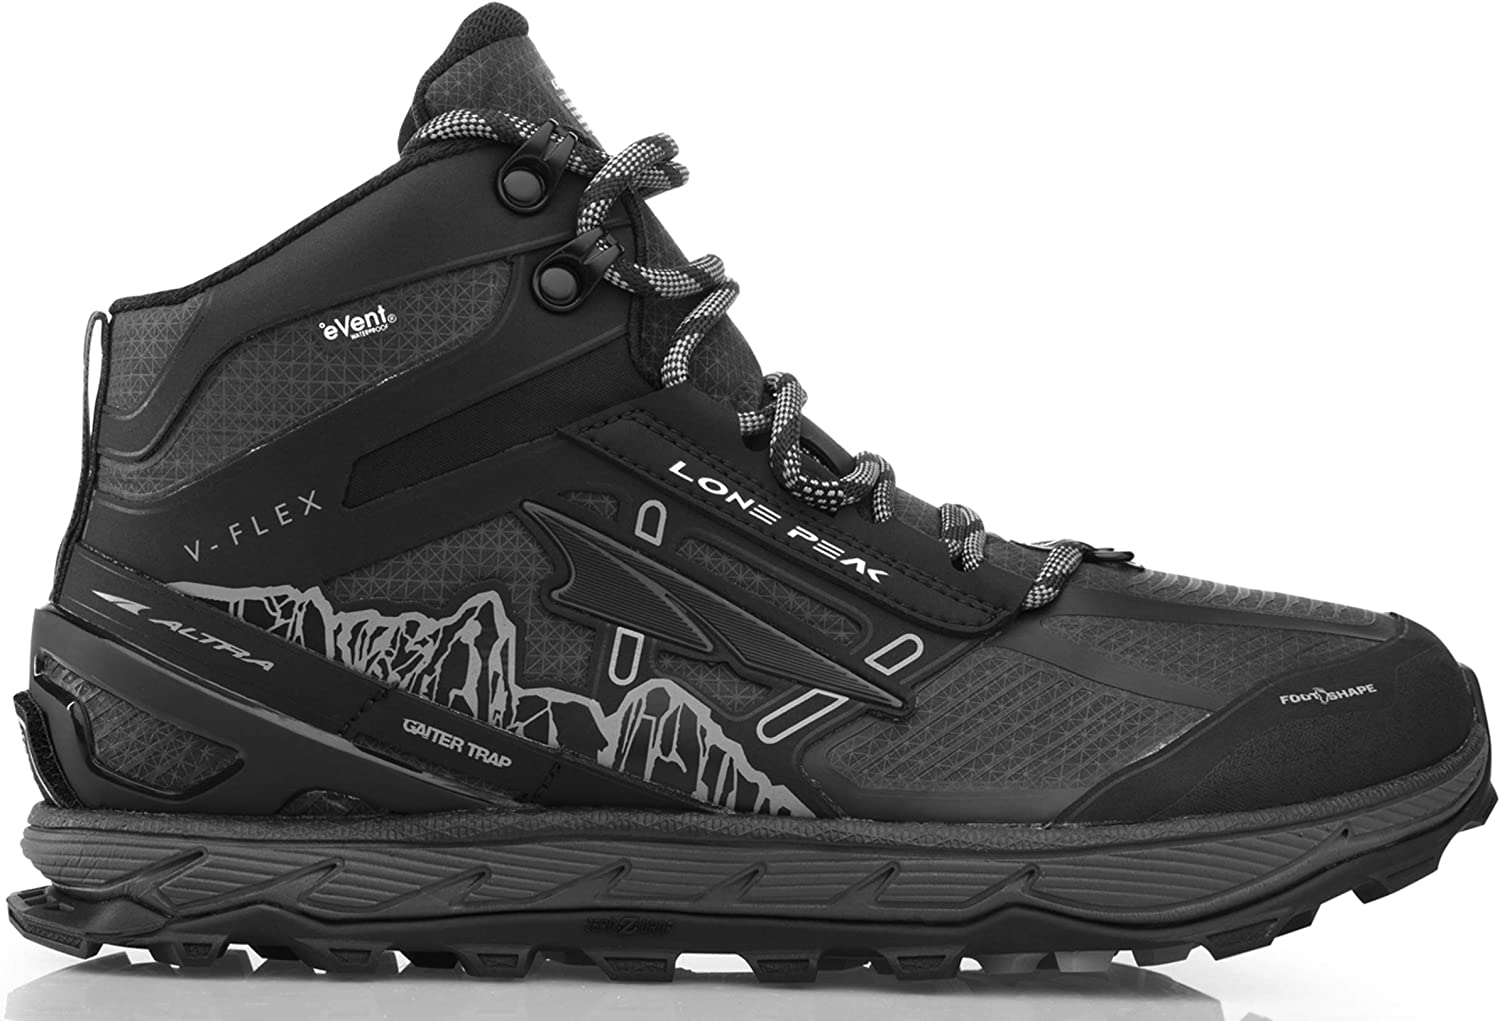 ALTRA Men s Lone Peak 4 Mid RSM Waterproof Trail Running Shoe